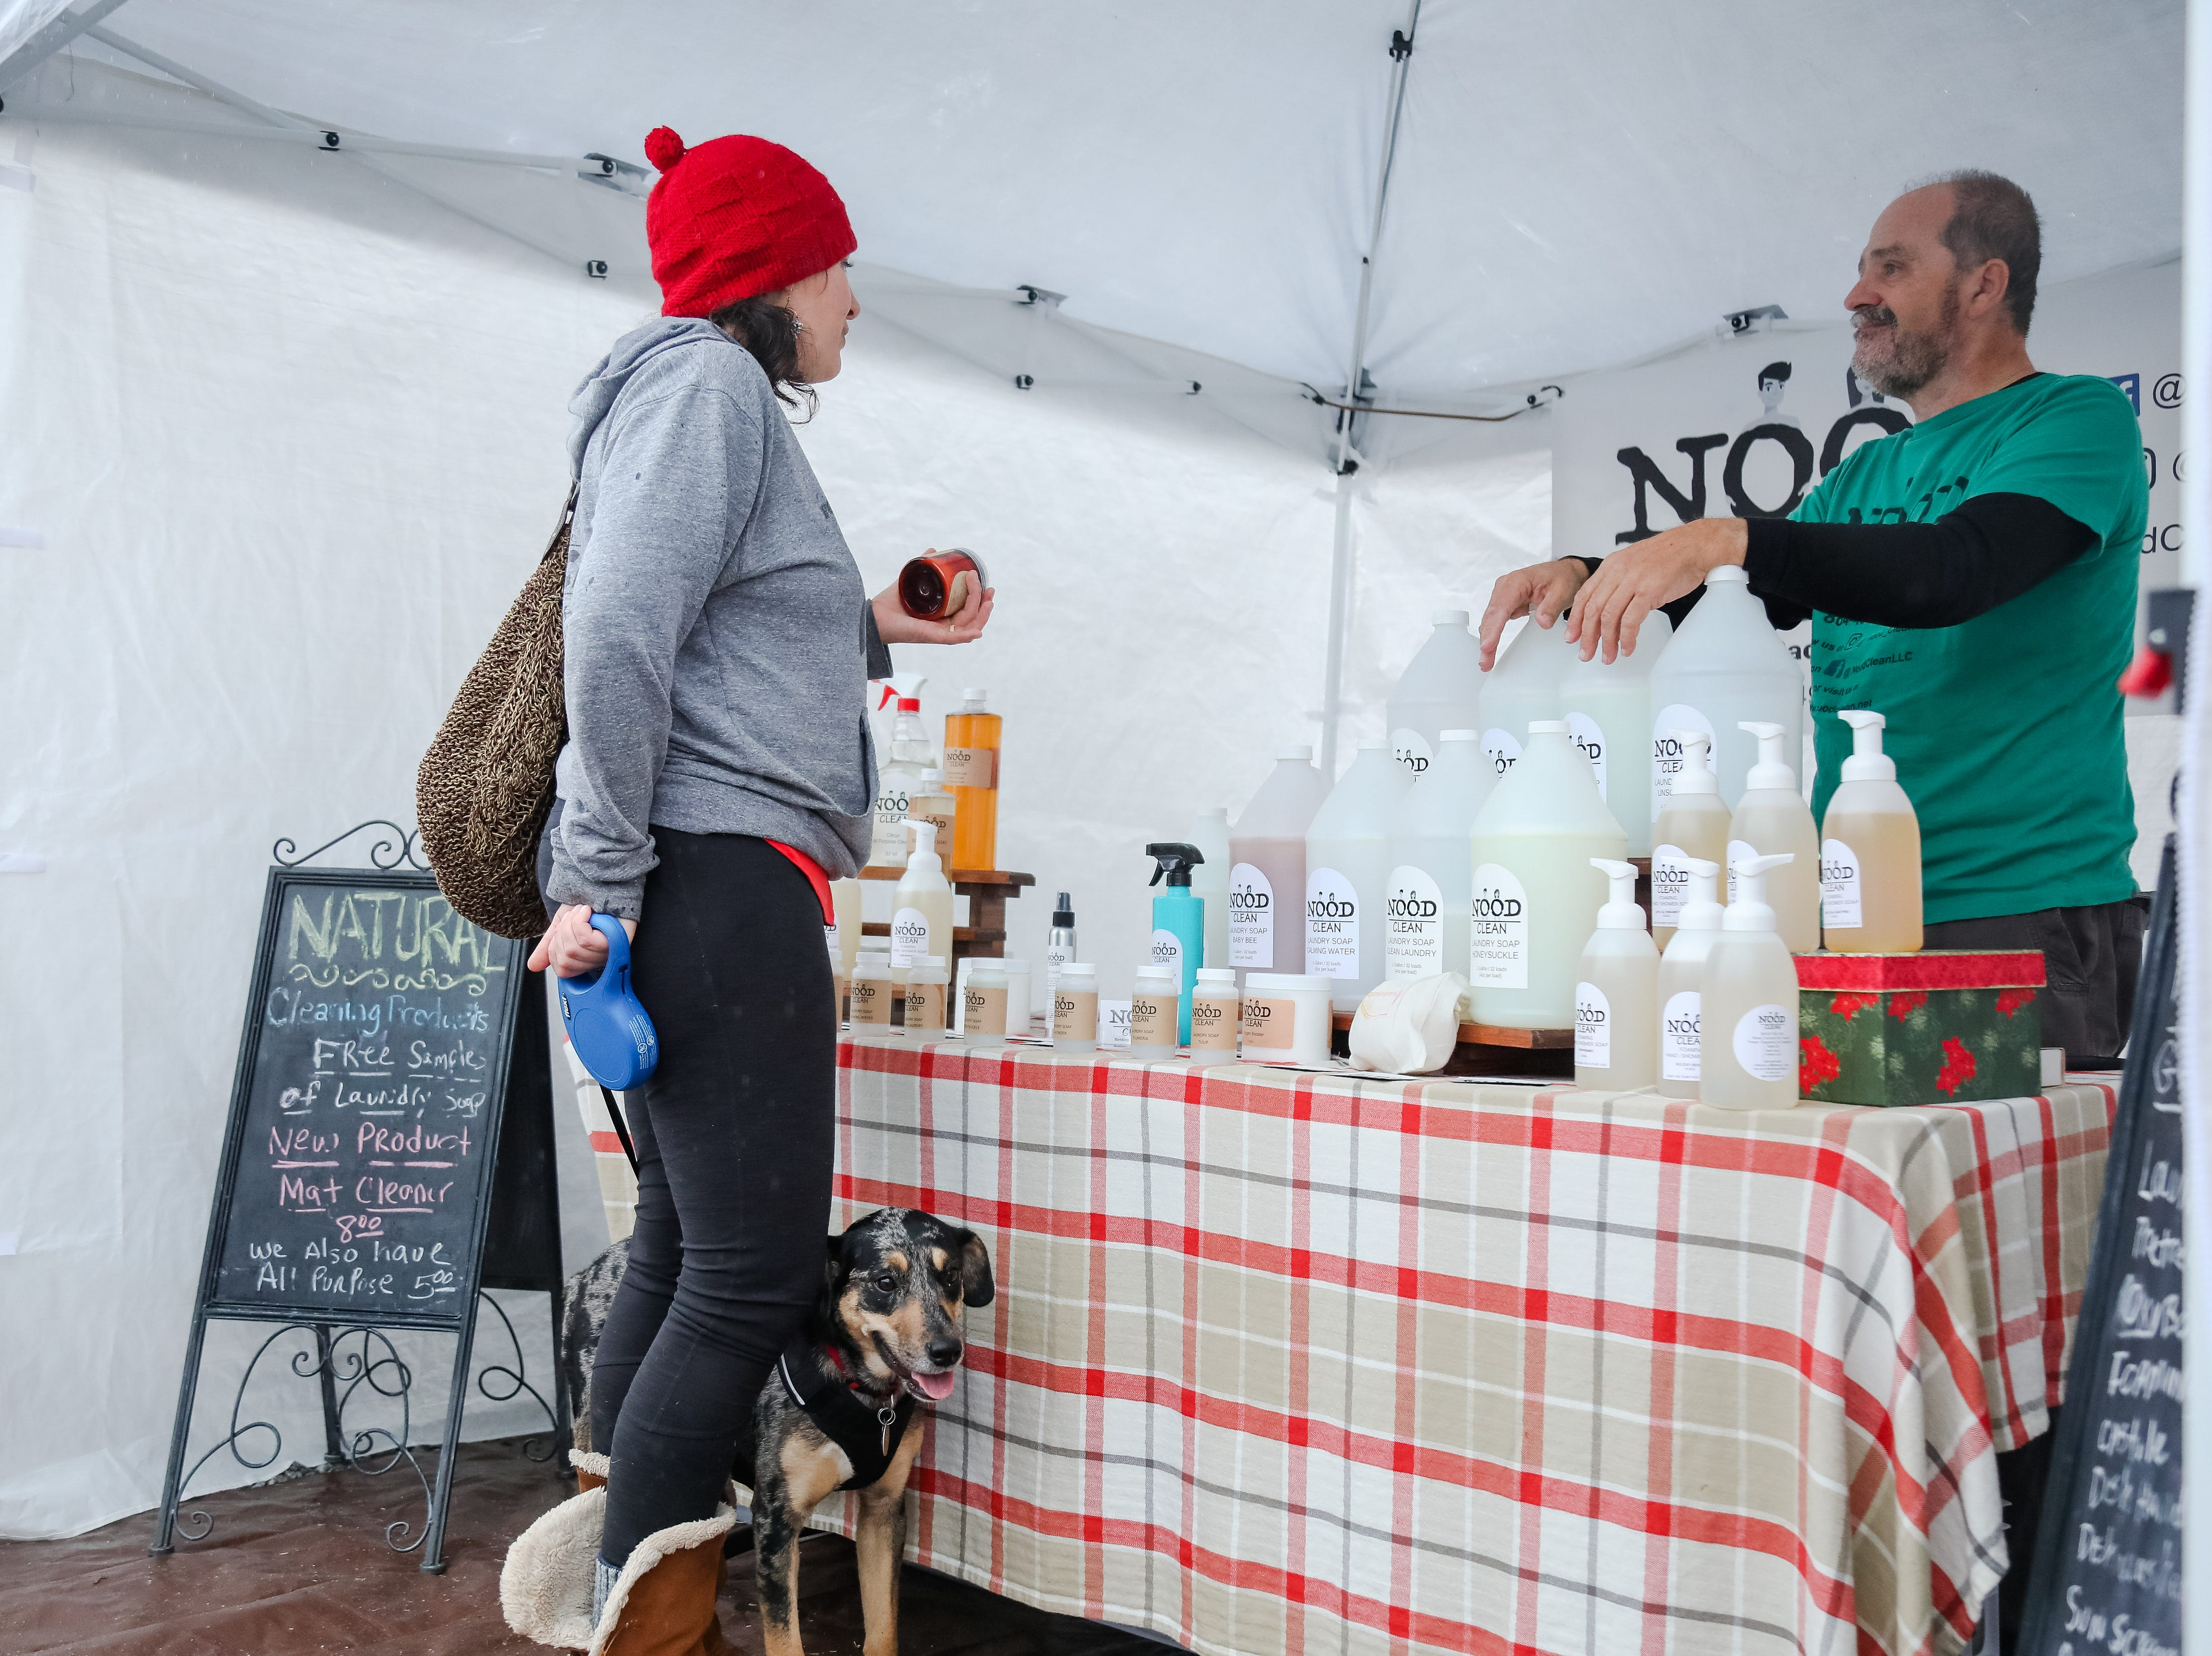 Rebekah Synder and her dog Pepper buy some laundry soap from  Jim at the Nood Clean.  The Swamp Holiday Flea at the Swamp Rabbit Cafe & Grocery featuring local artists, woodworkers, candle makers, potters, and dog-treat bakers.  In addition to 40+ vendors, and  music from a local acoustic band. Saturday December 15,2018